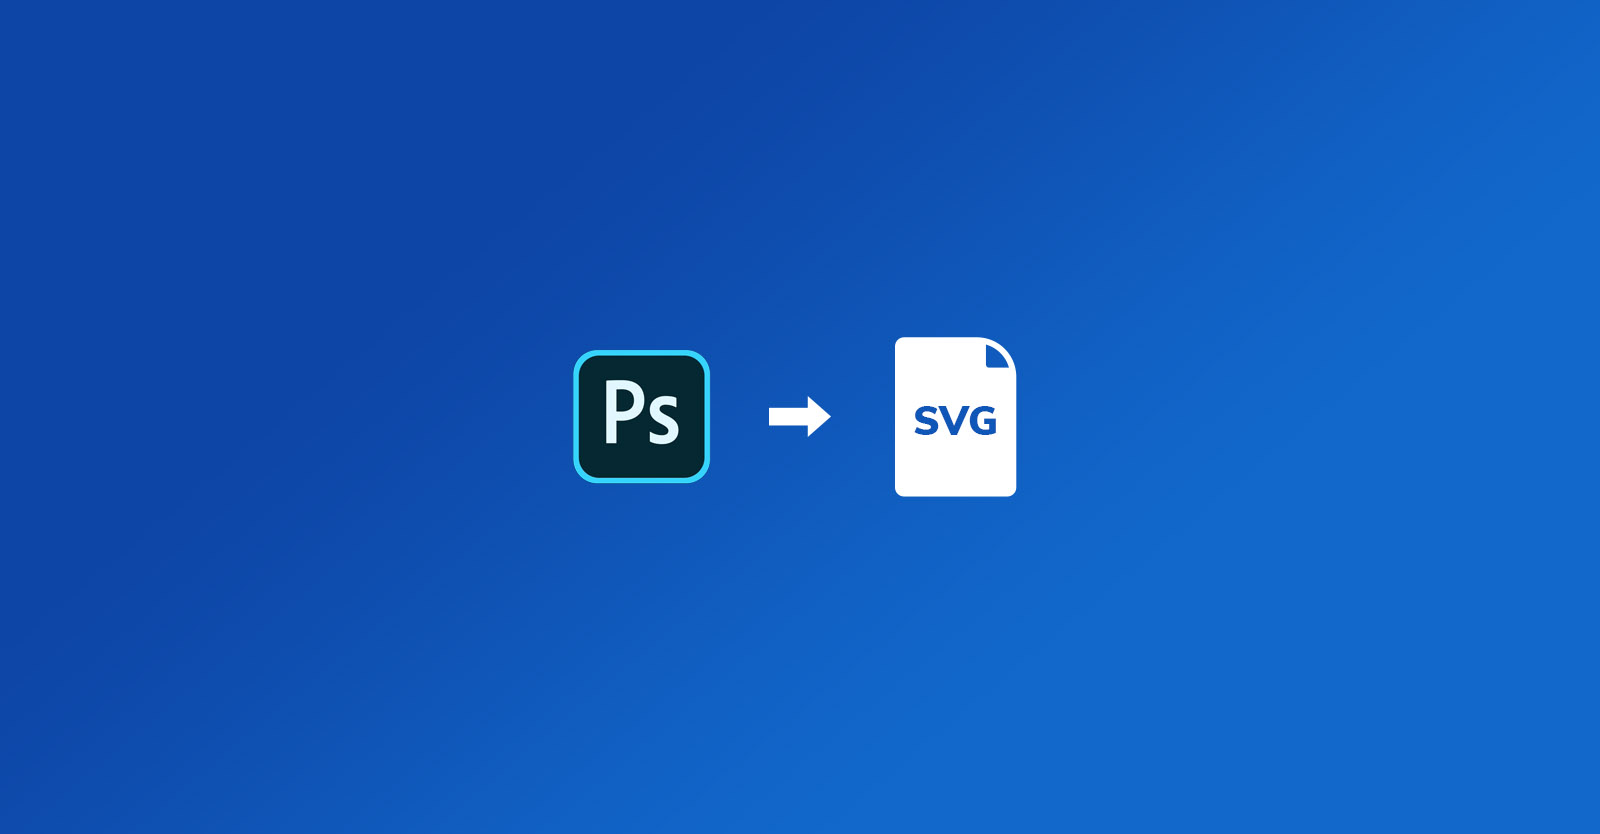 How to export an SVG file from Photoshop